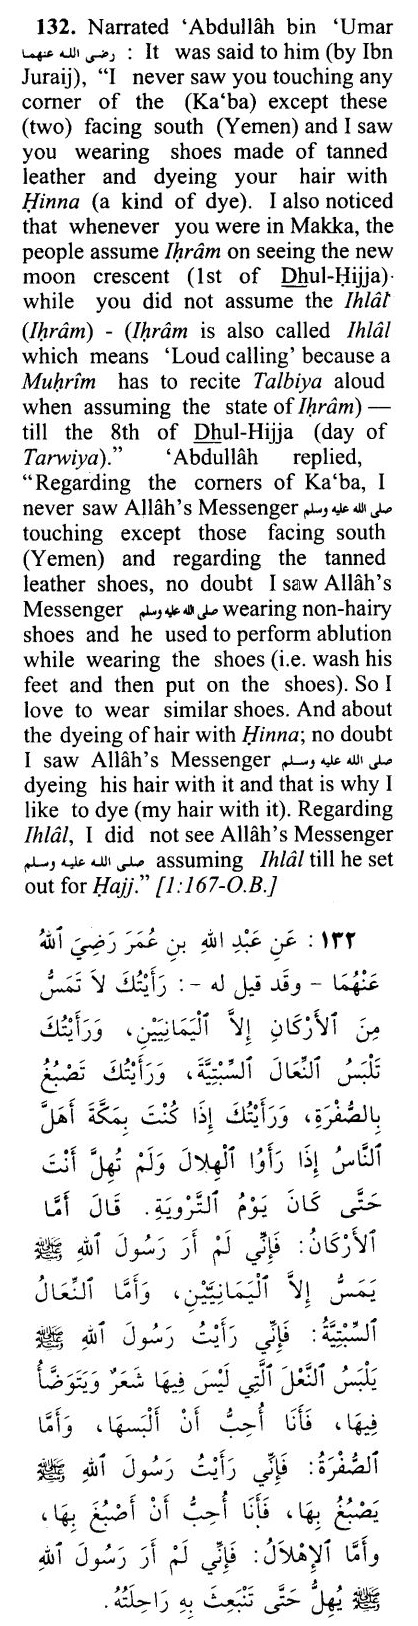 Hadith on combing hair, touching Kaaba, wearing shoes, and Henna